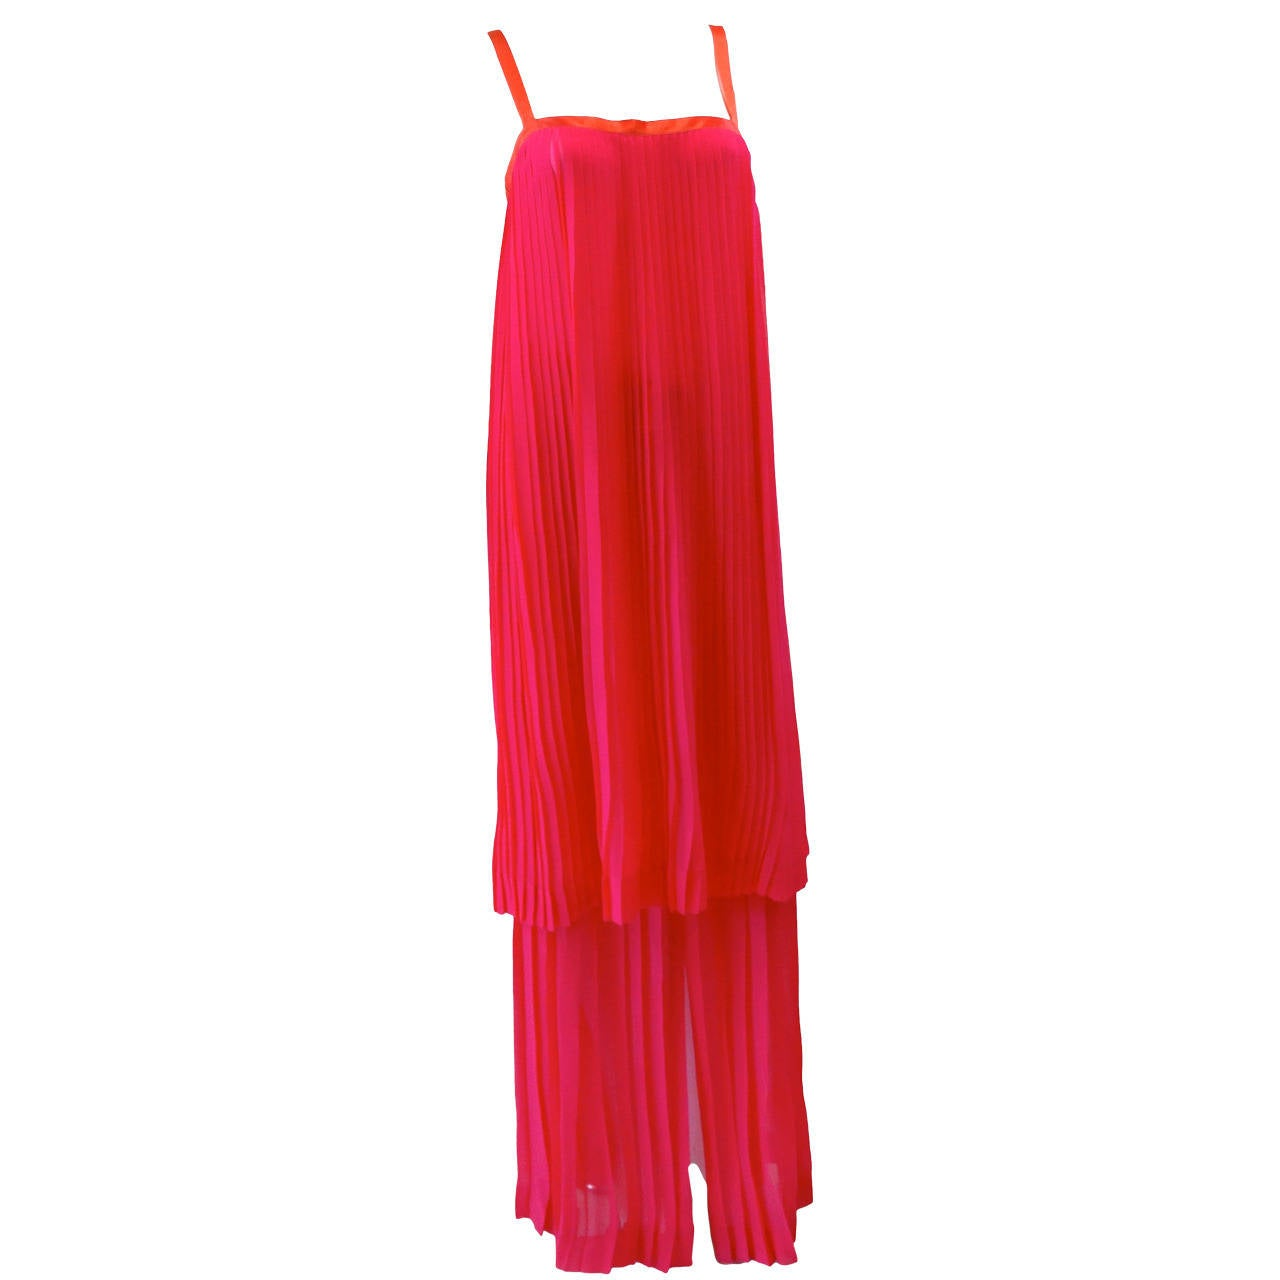 1980s Saint Laurent Electric Pink Accordian Silk Dress Skirt Set